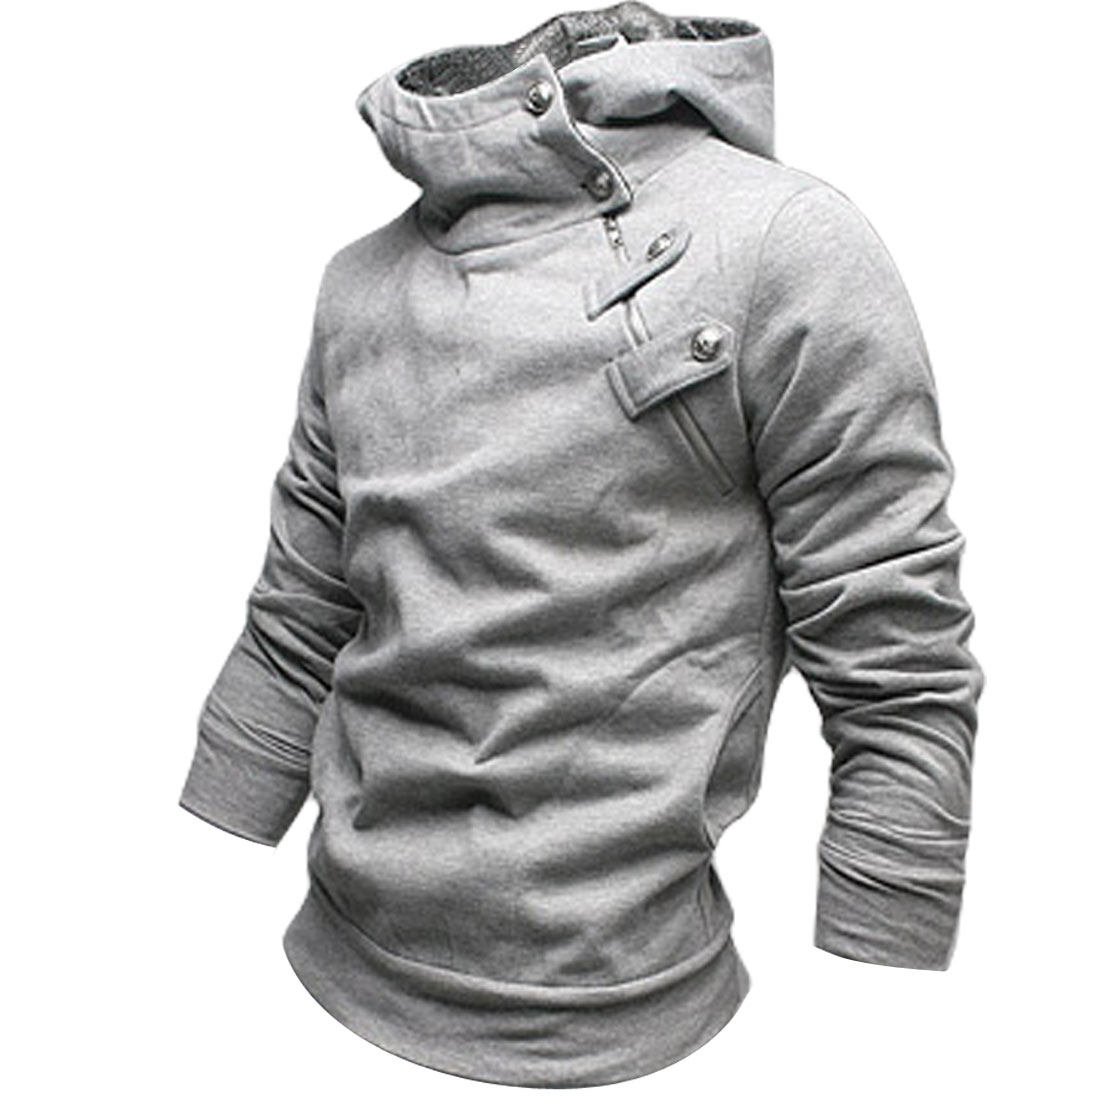 Stylish Korea Mens Top Designed Hoodie Jacket Coat Sweatshirt Gray S